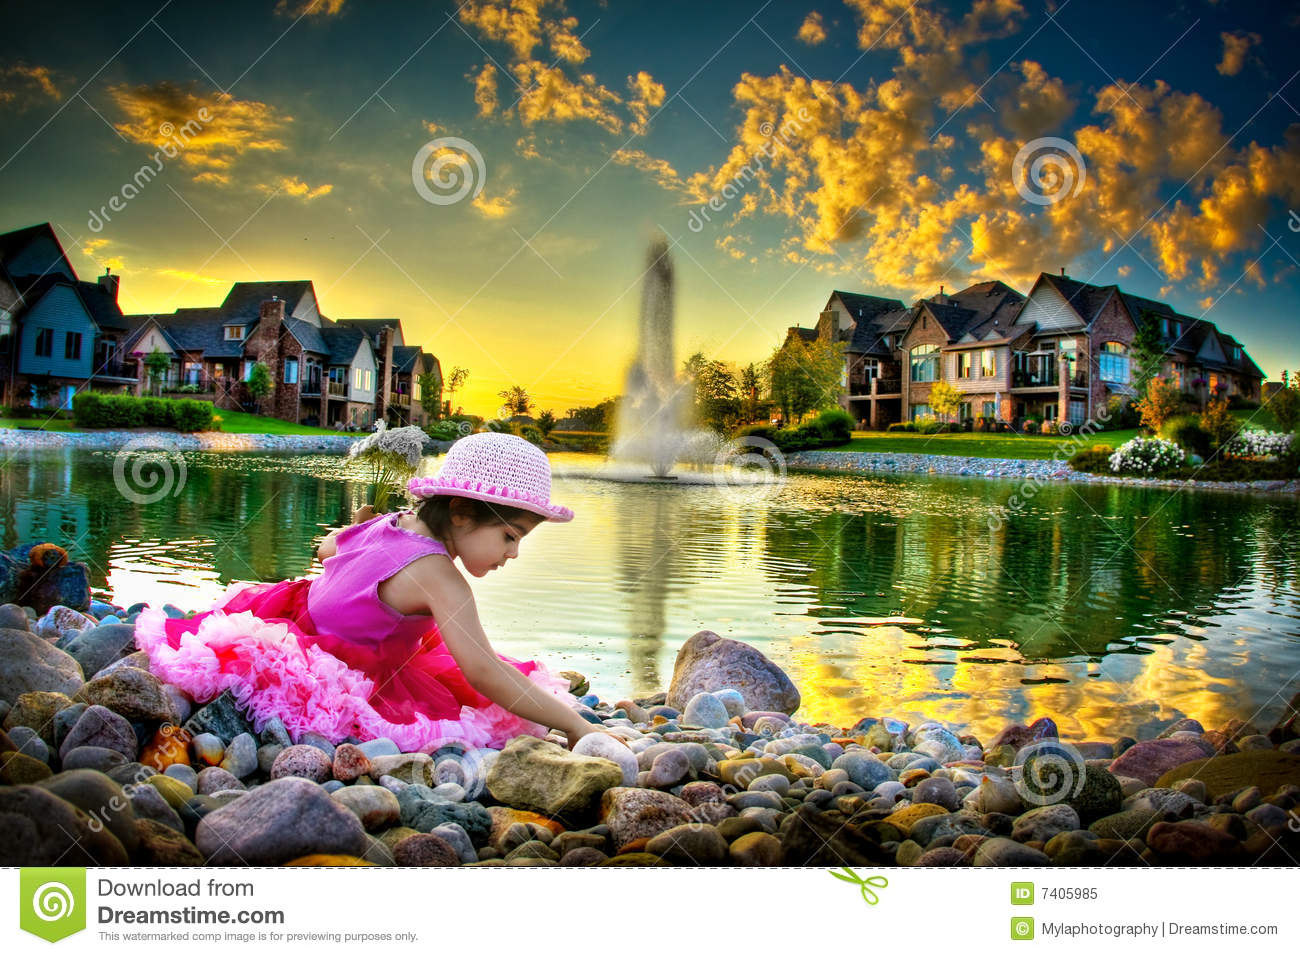 Child by the pond